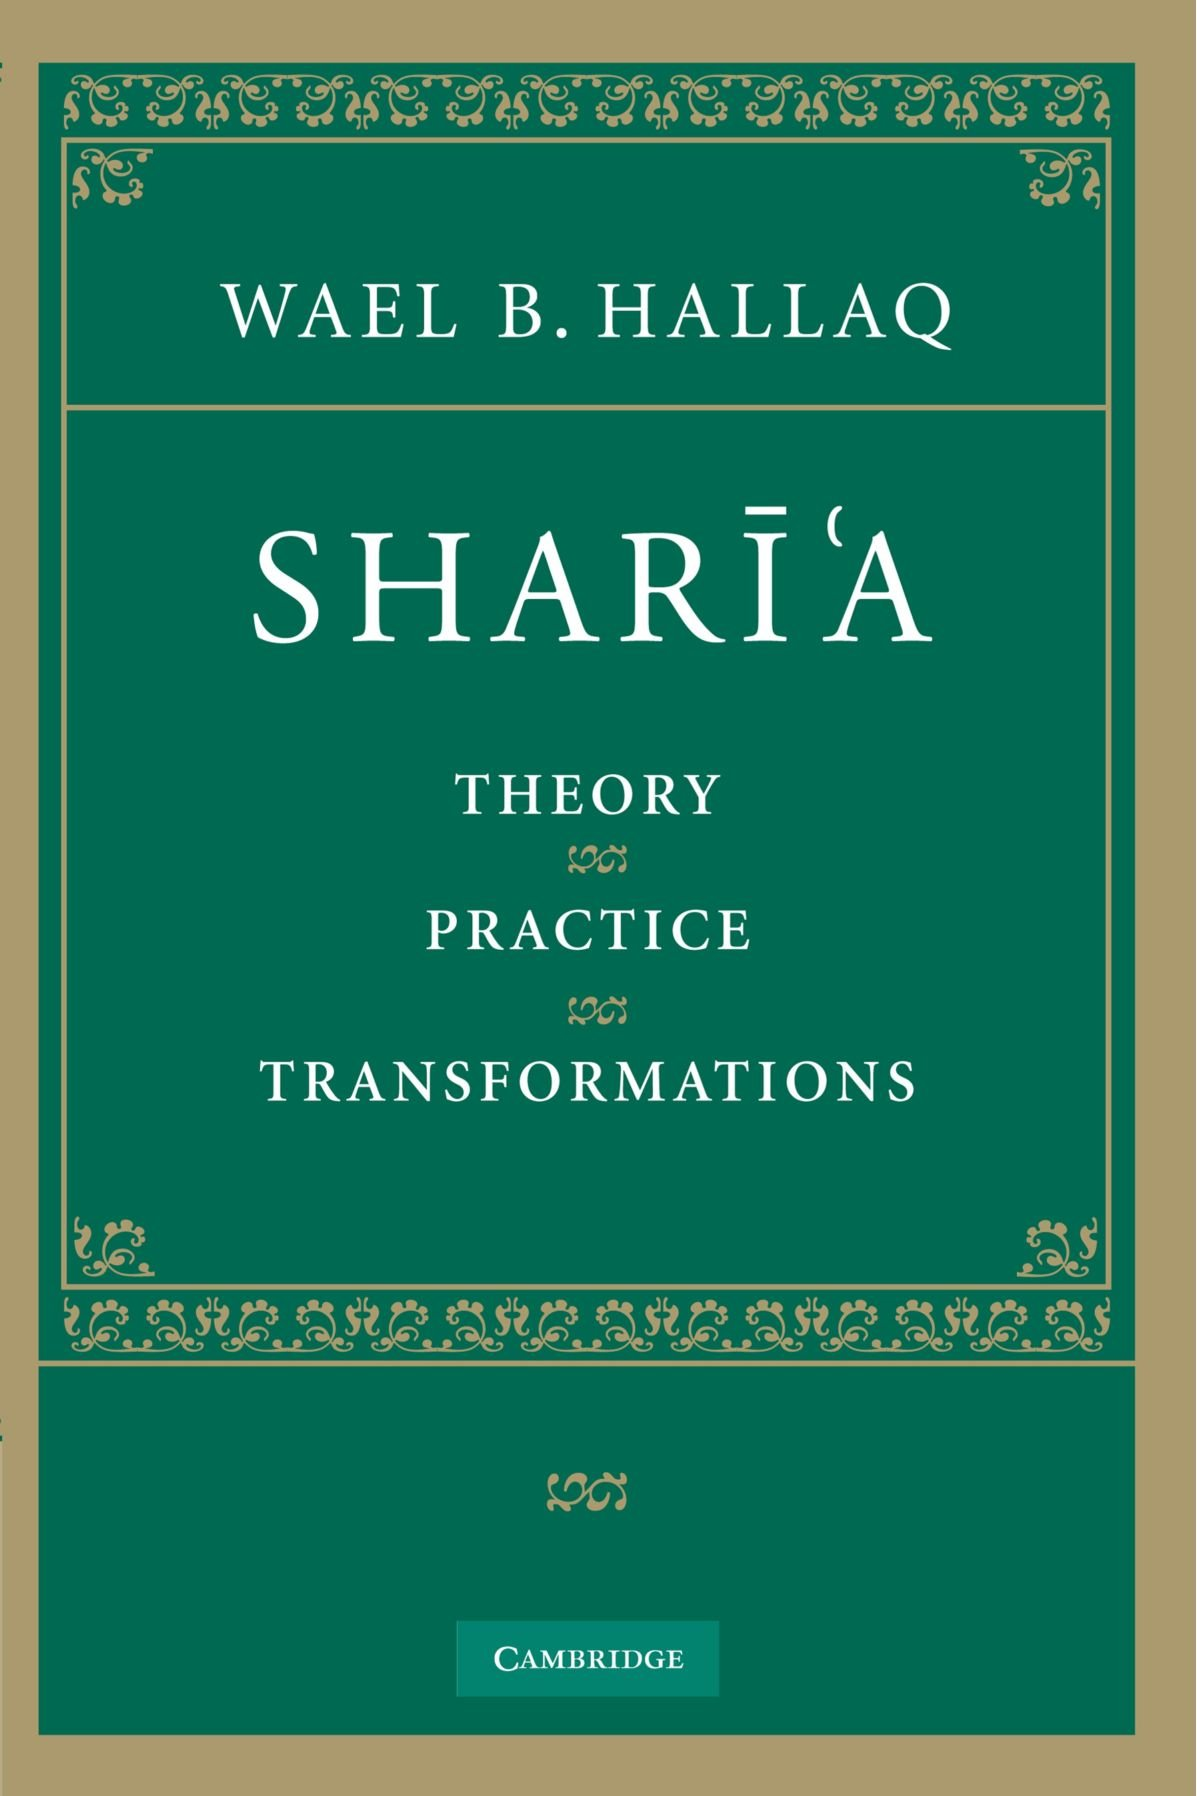 Sharia: Theory, Practice, Transformations by Cambridge University Press